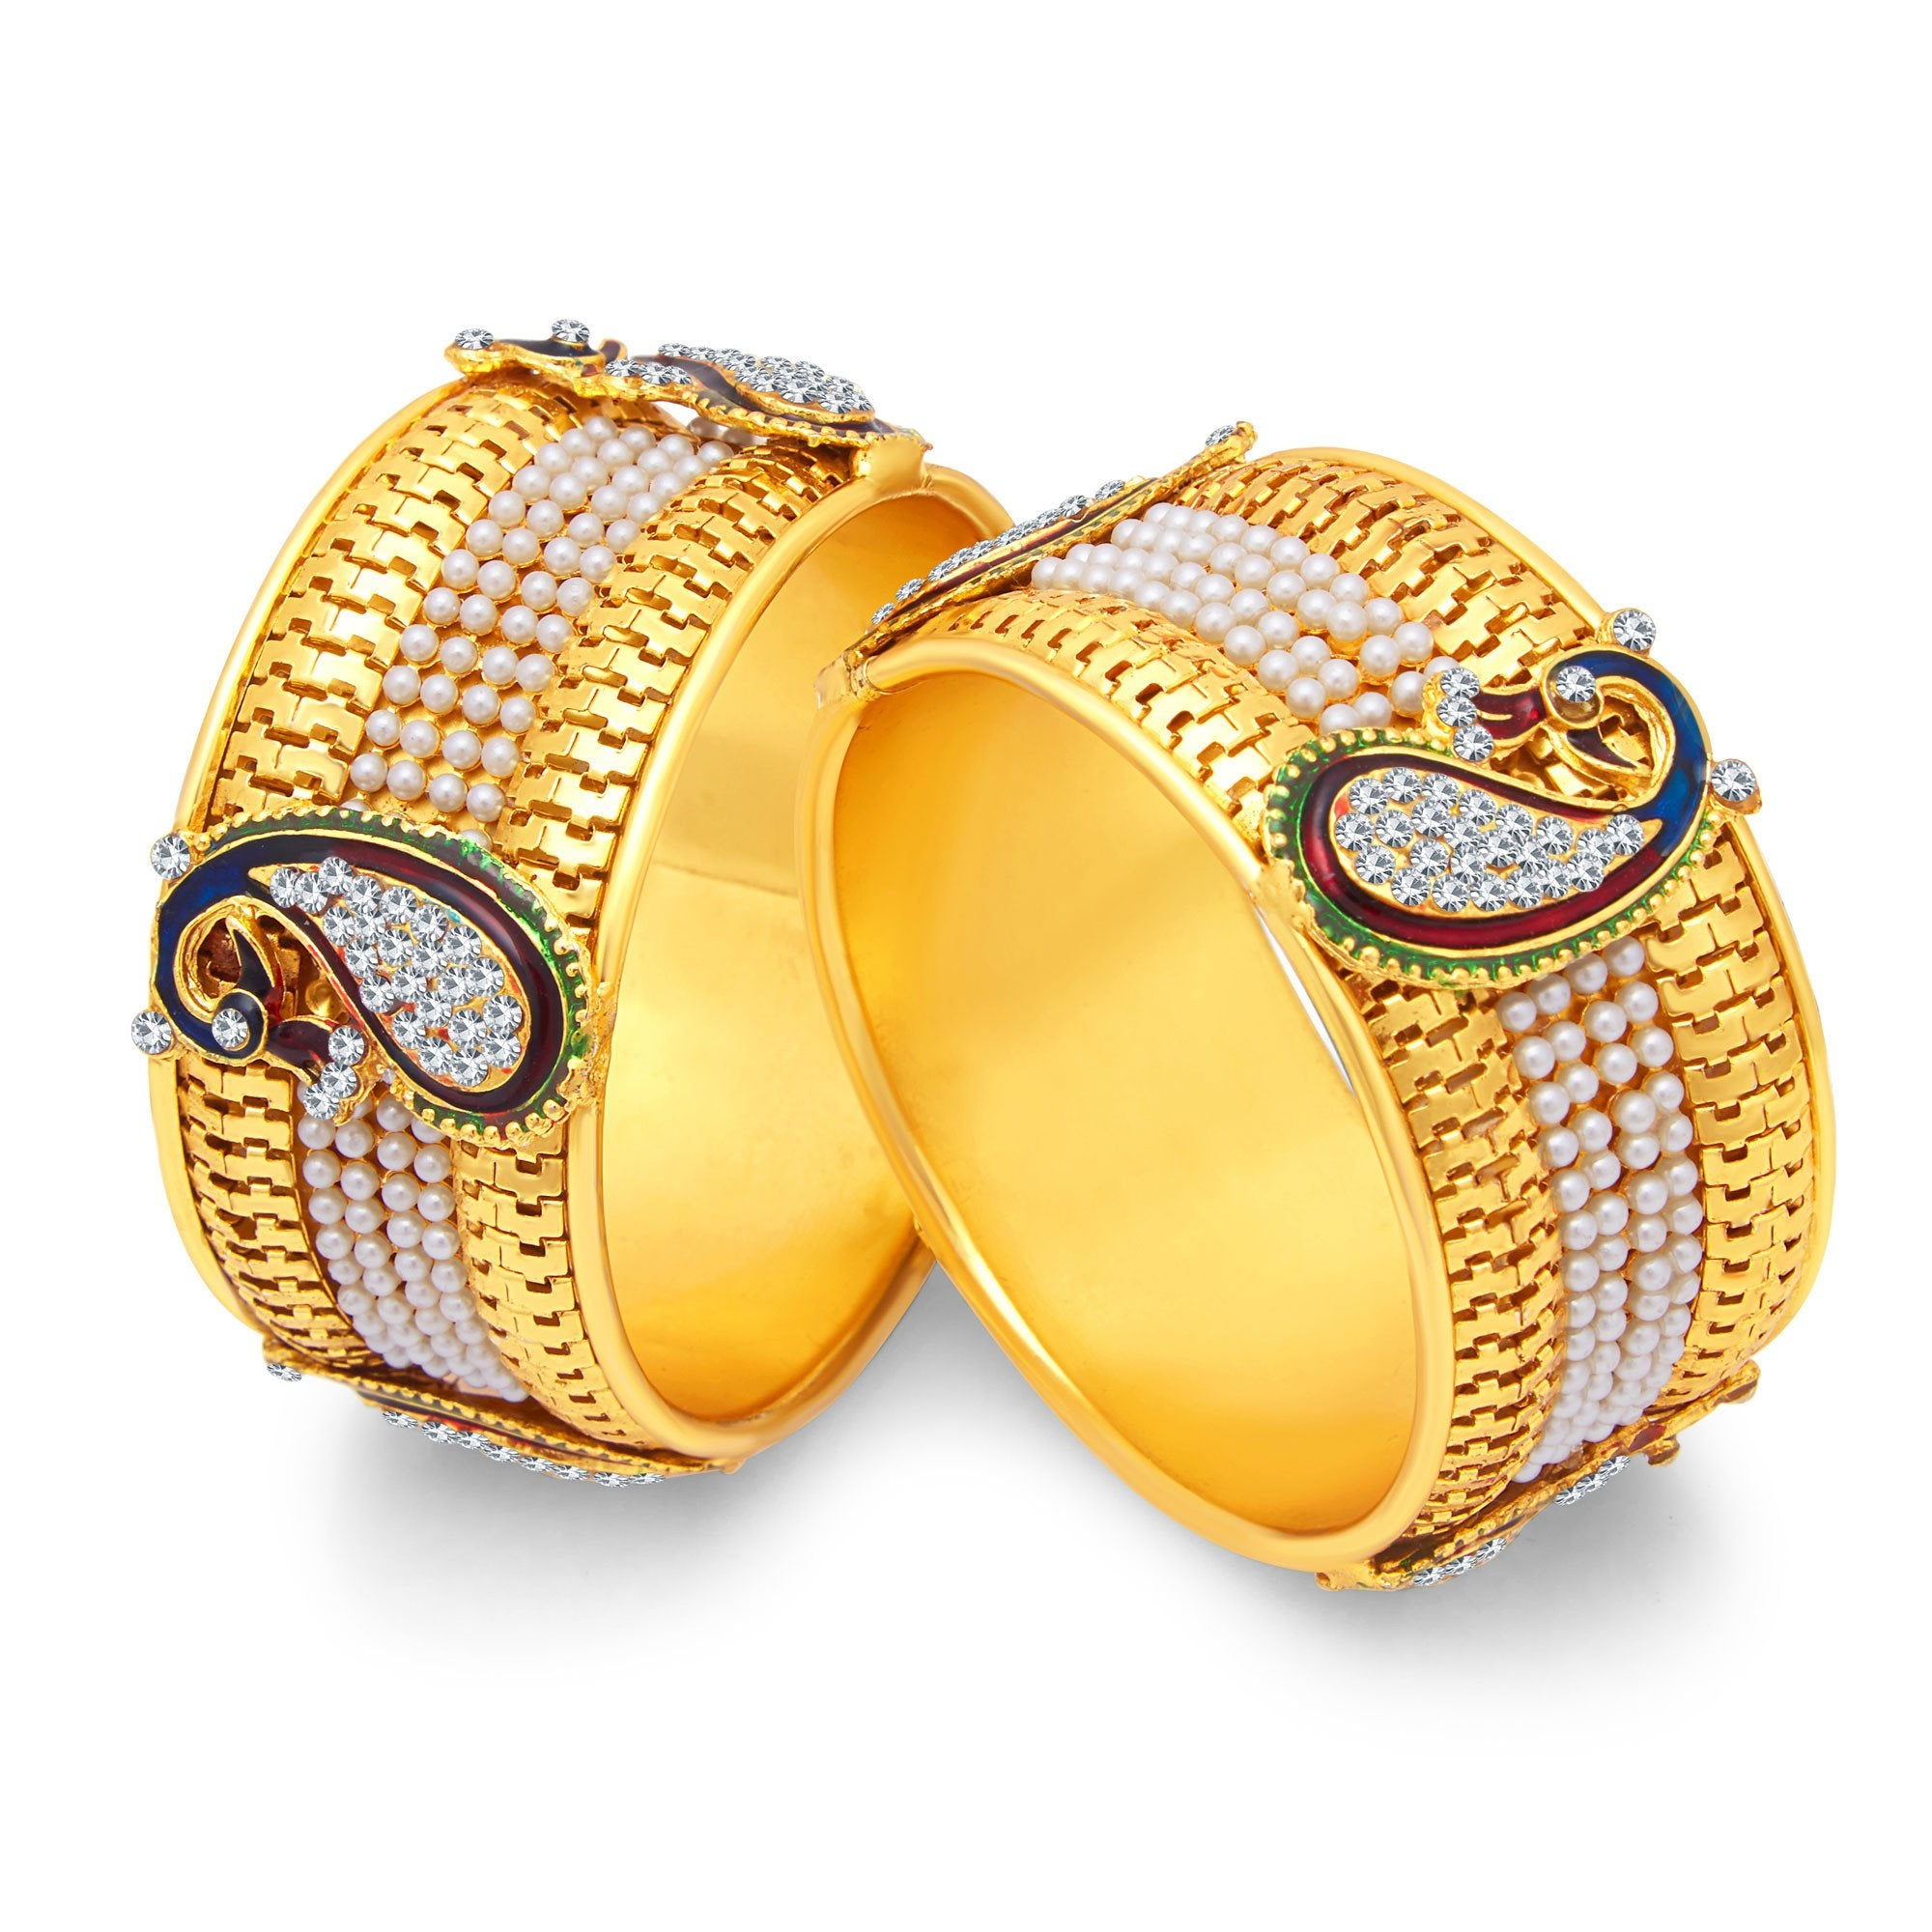 Trustful Indian Bollywood Traditional Goldplated Kada Bracelets Bangle Jewellery 2*6 With A Long Standing Reputation Jewelry & Watches